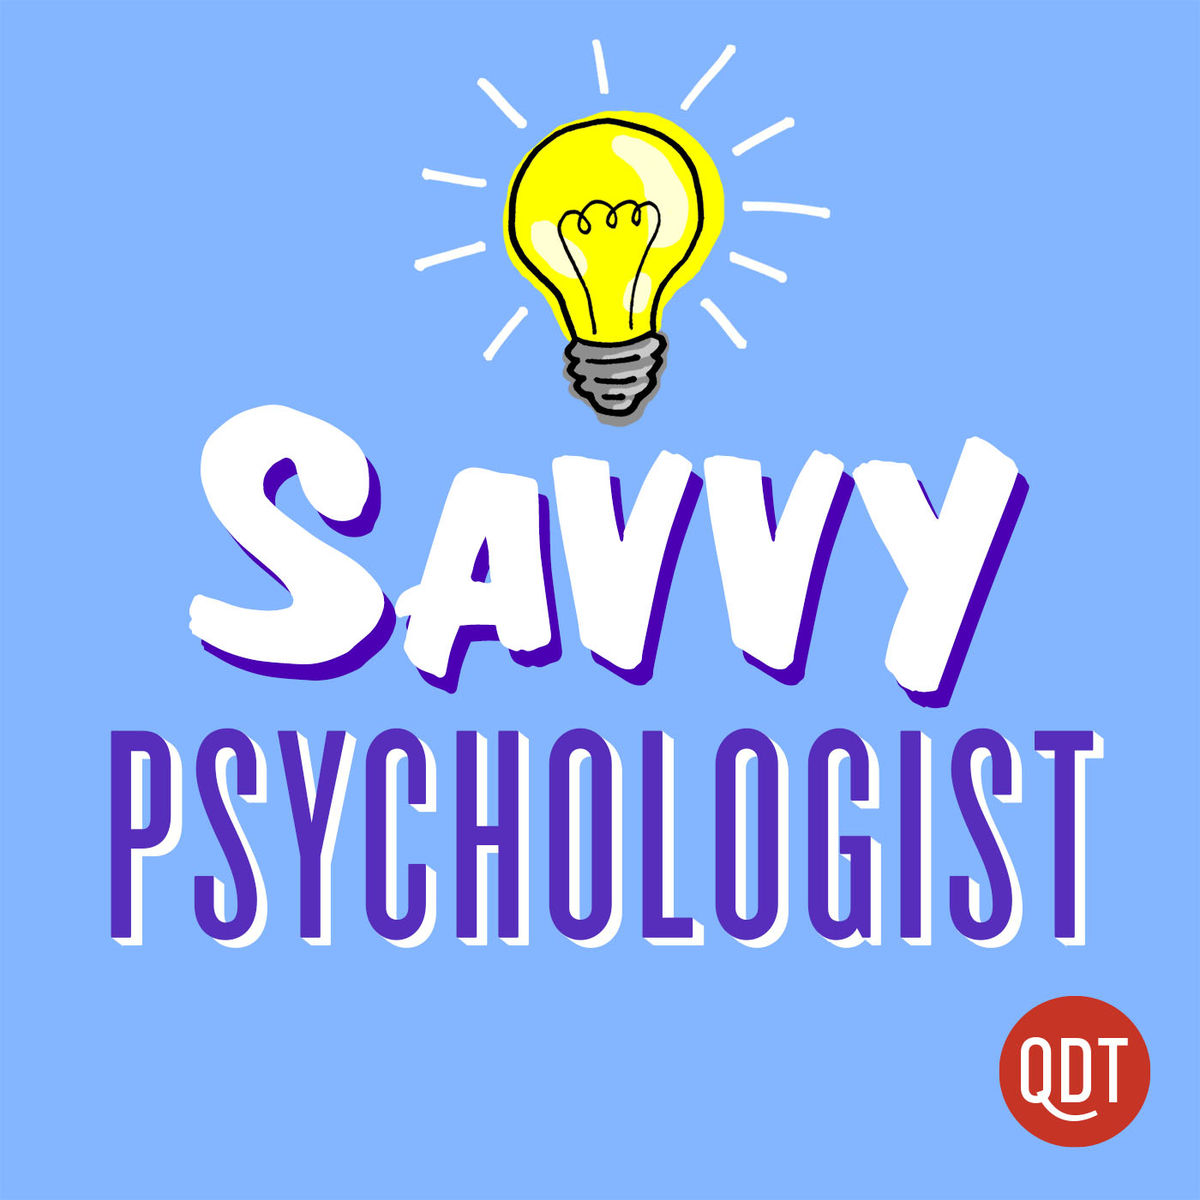 How to Recognize 5 Tactics of Gaslighting | Psychology Today